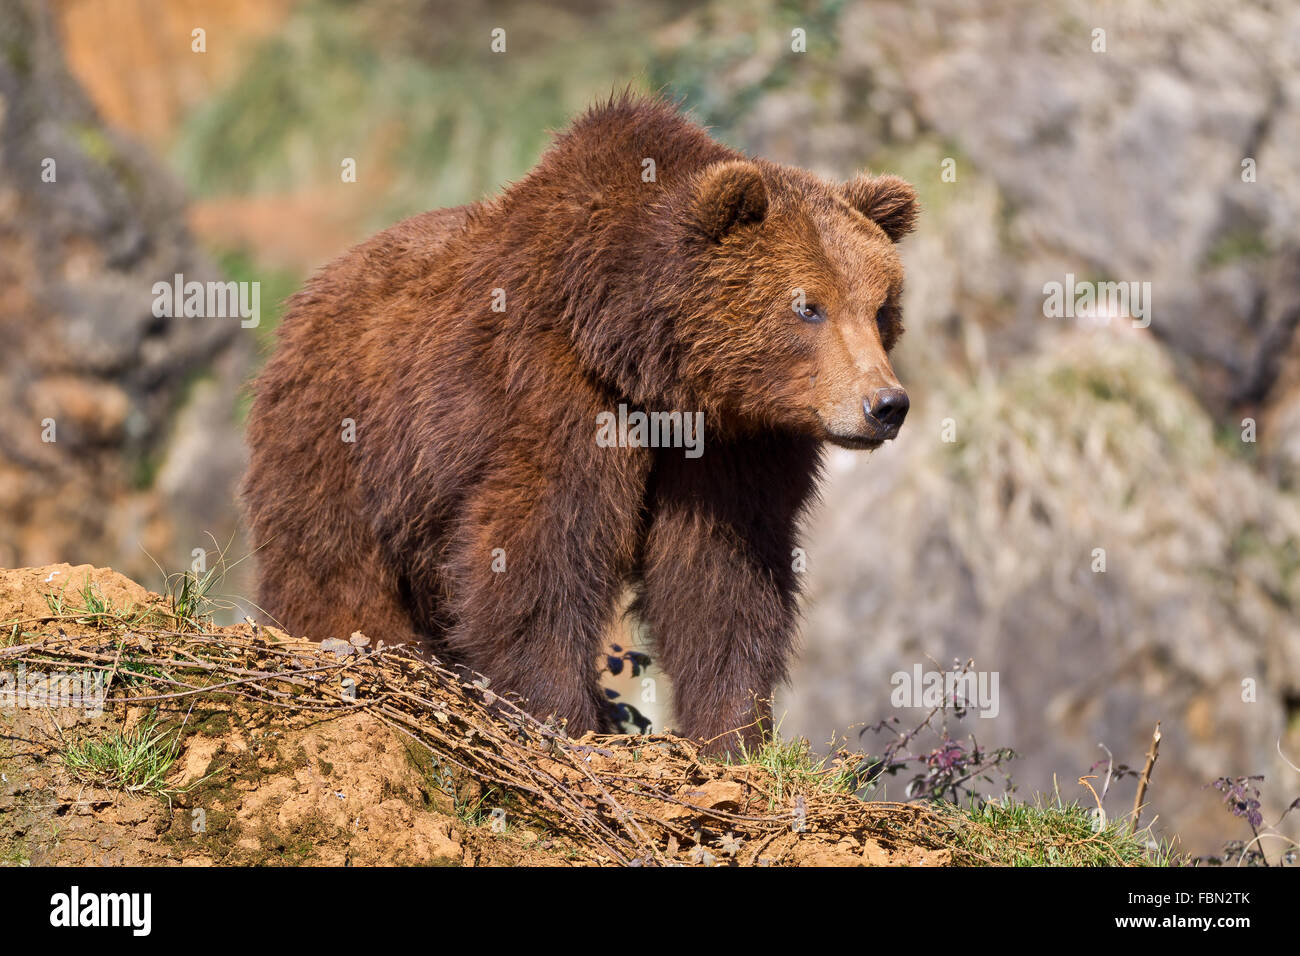 A brown (or grizzly) bear in Cabarceno Nature Park, Cantabria, Spain. Stock Photo